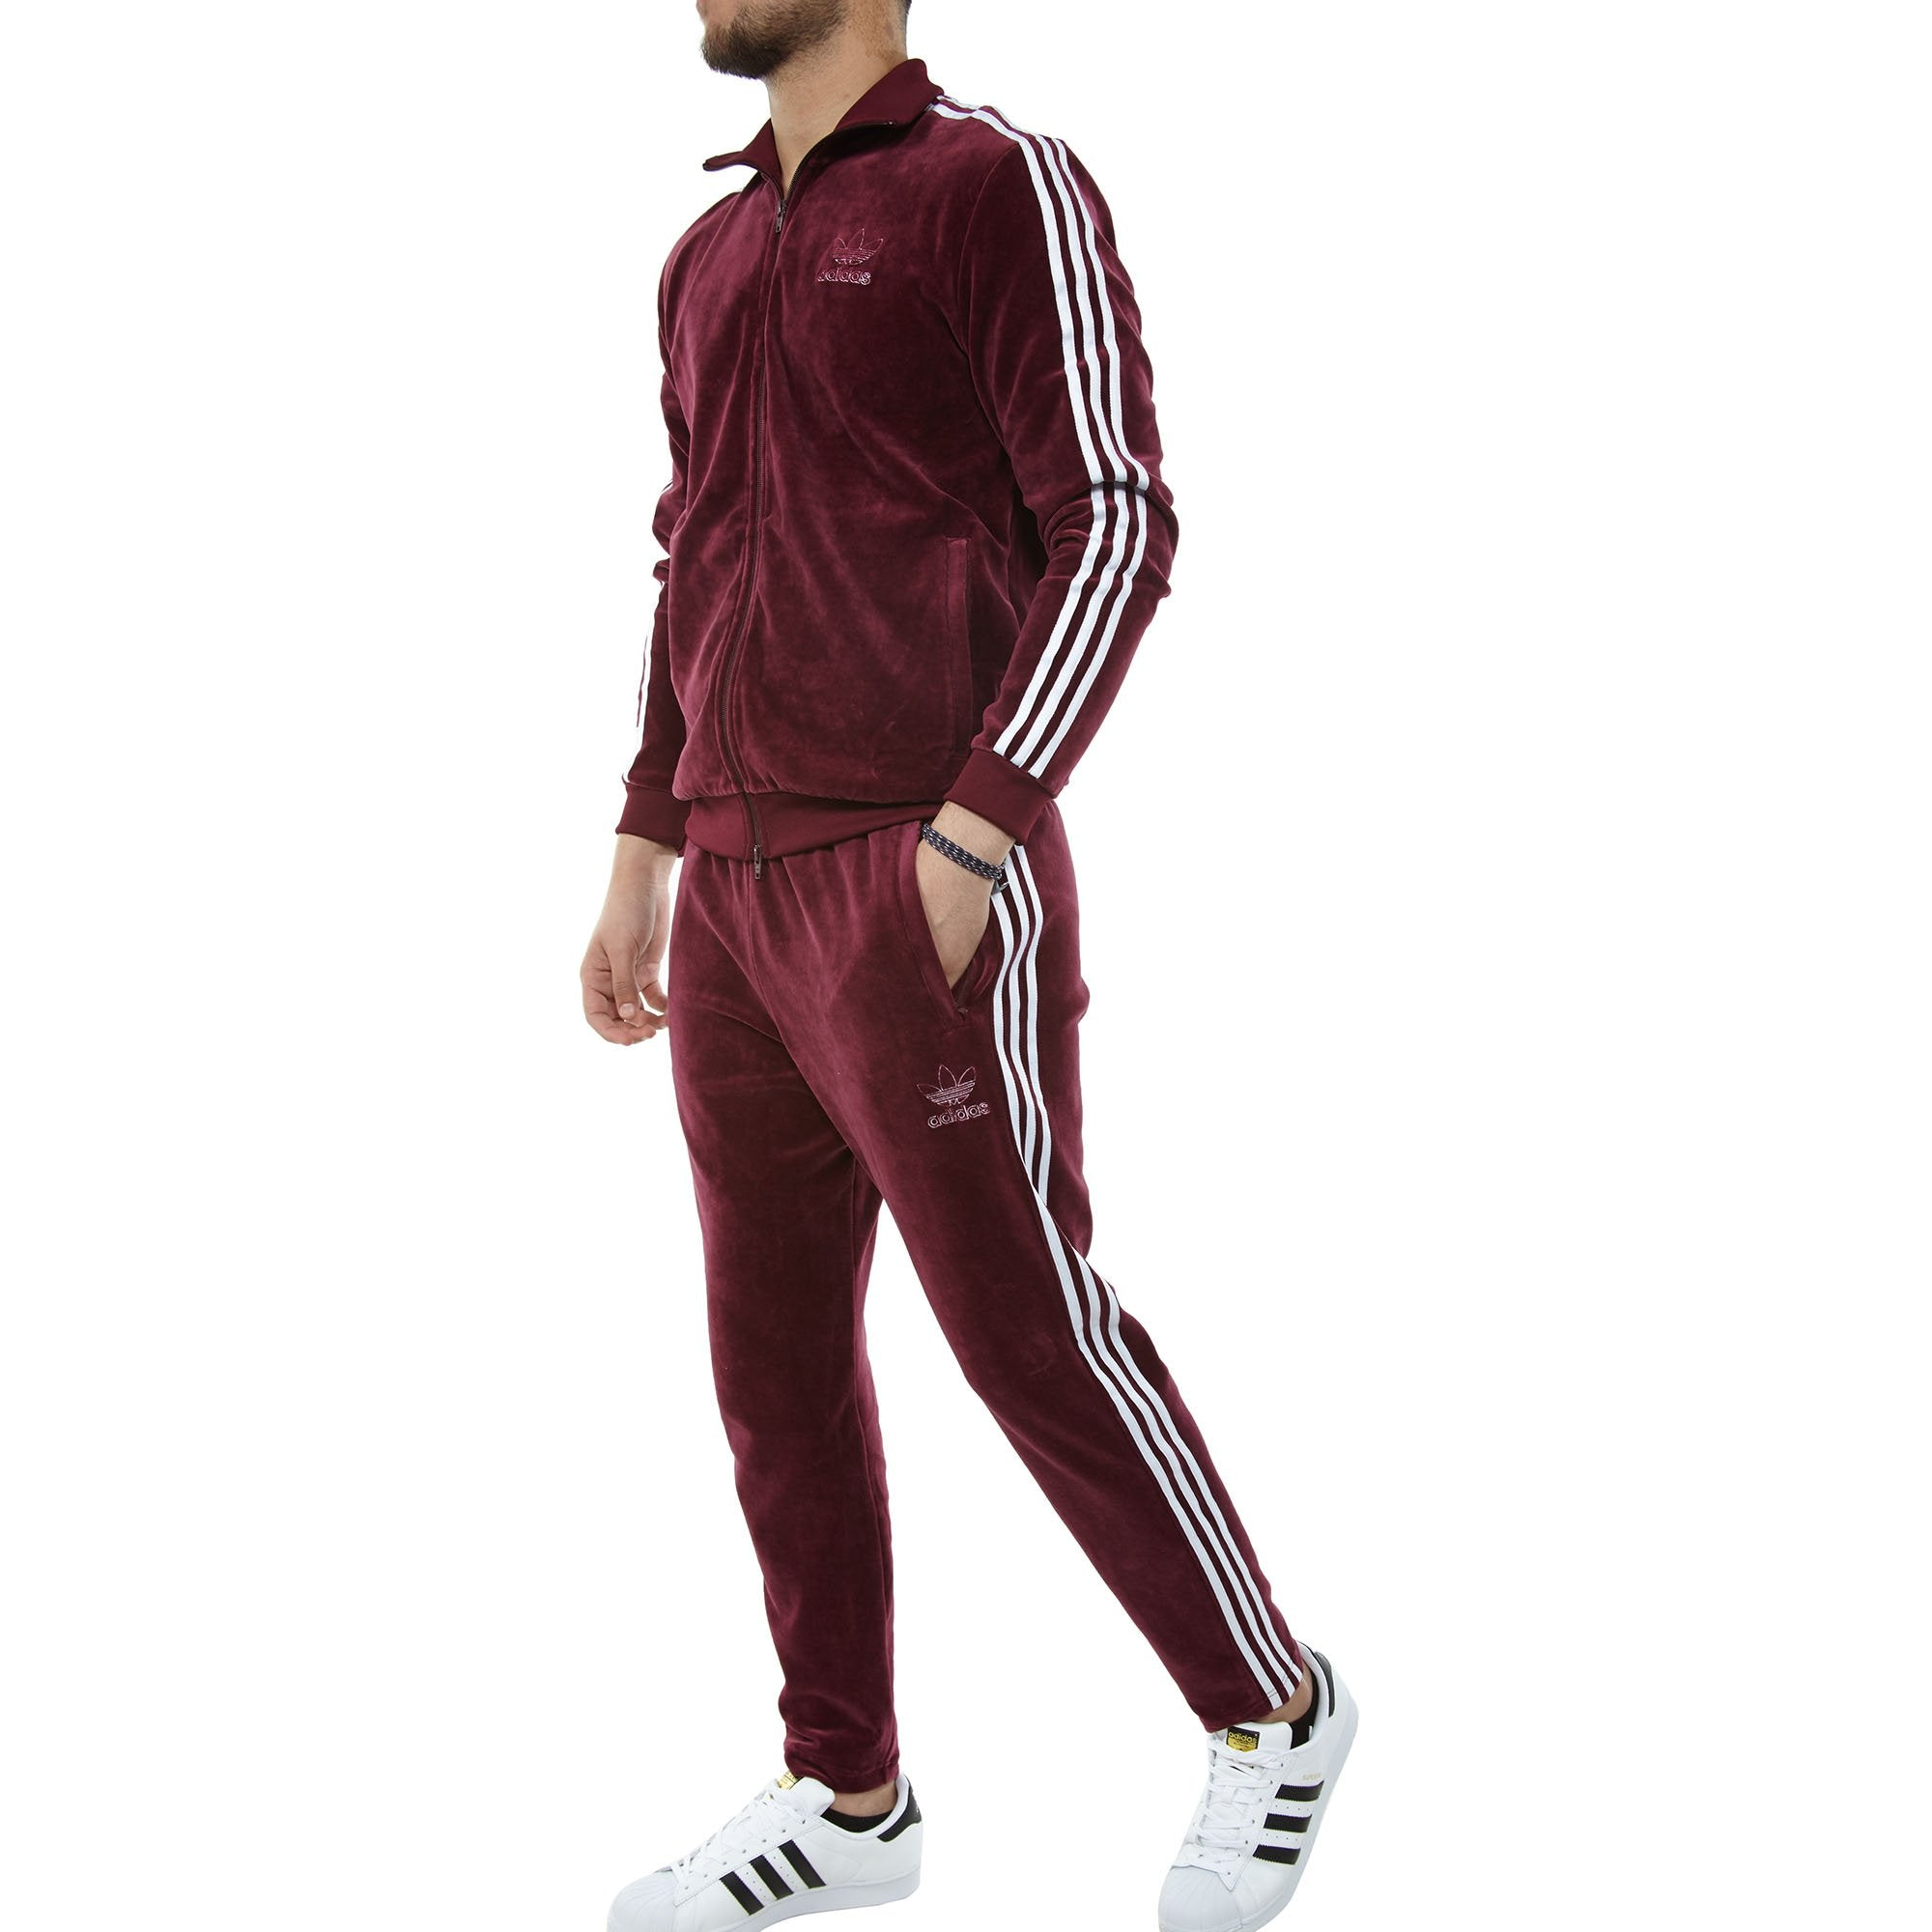 Adidas Originals Red Velour Bb Track Pants